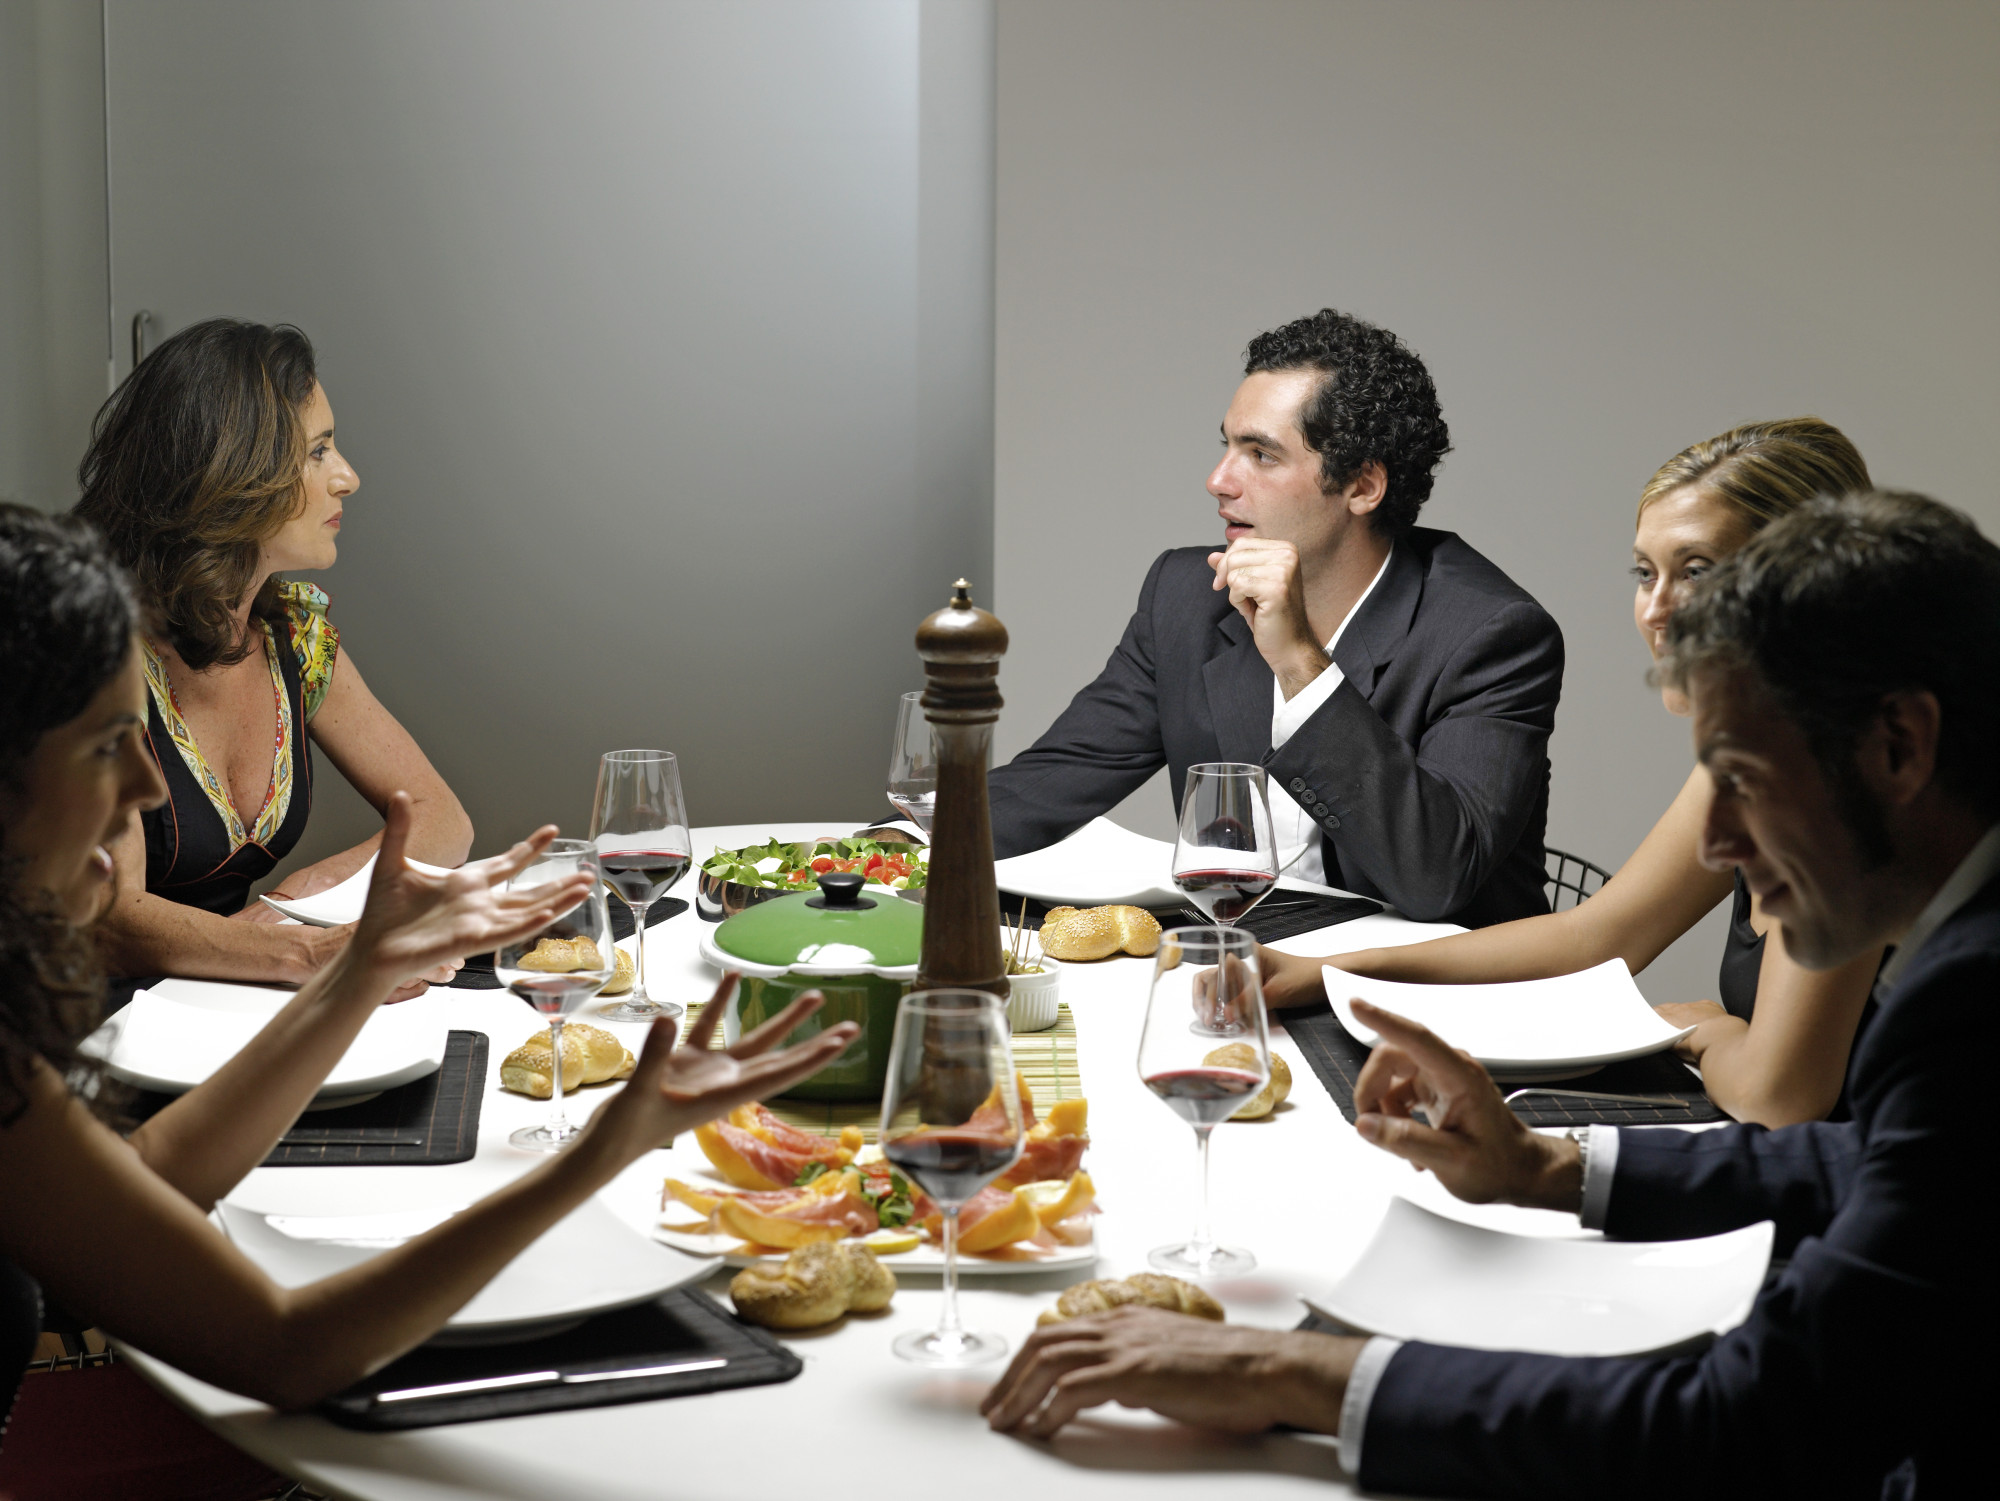 Social Dining Apps That Set Up You To Eat With Strangers